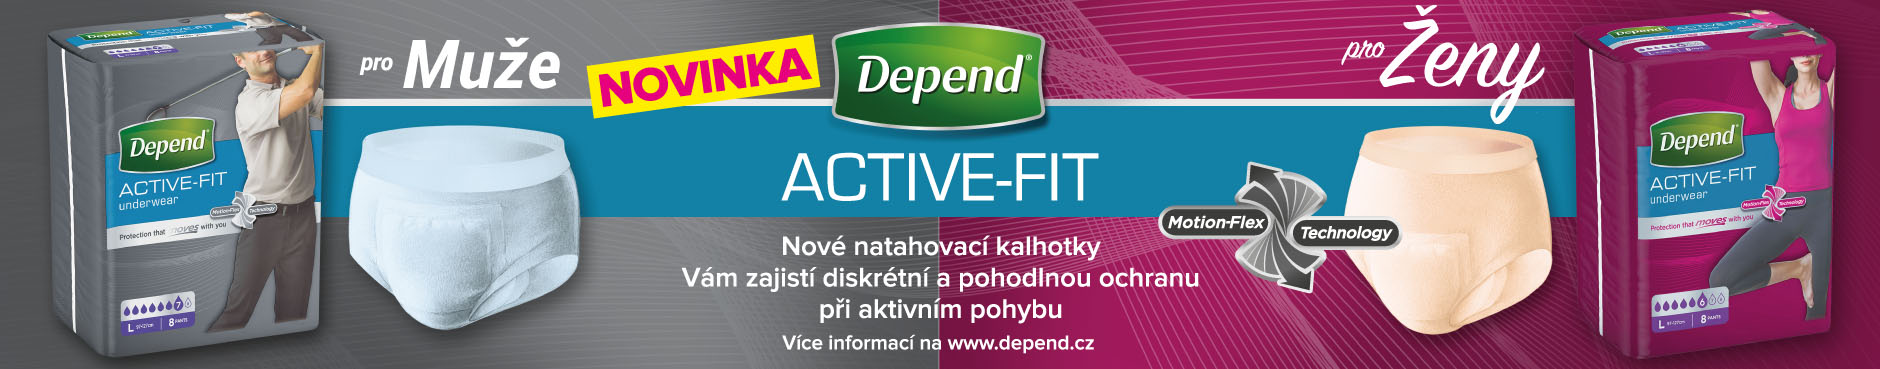 Depend Active-Fit